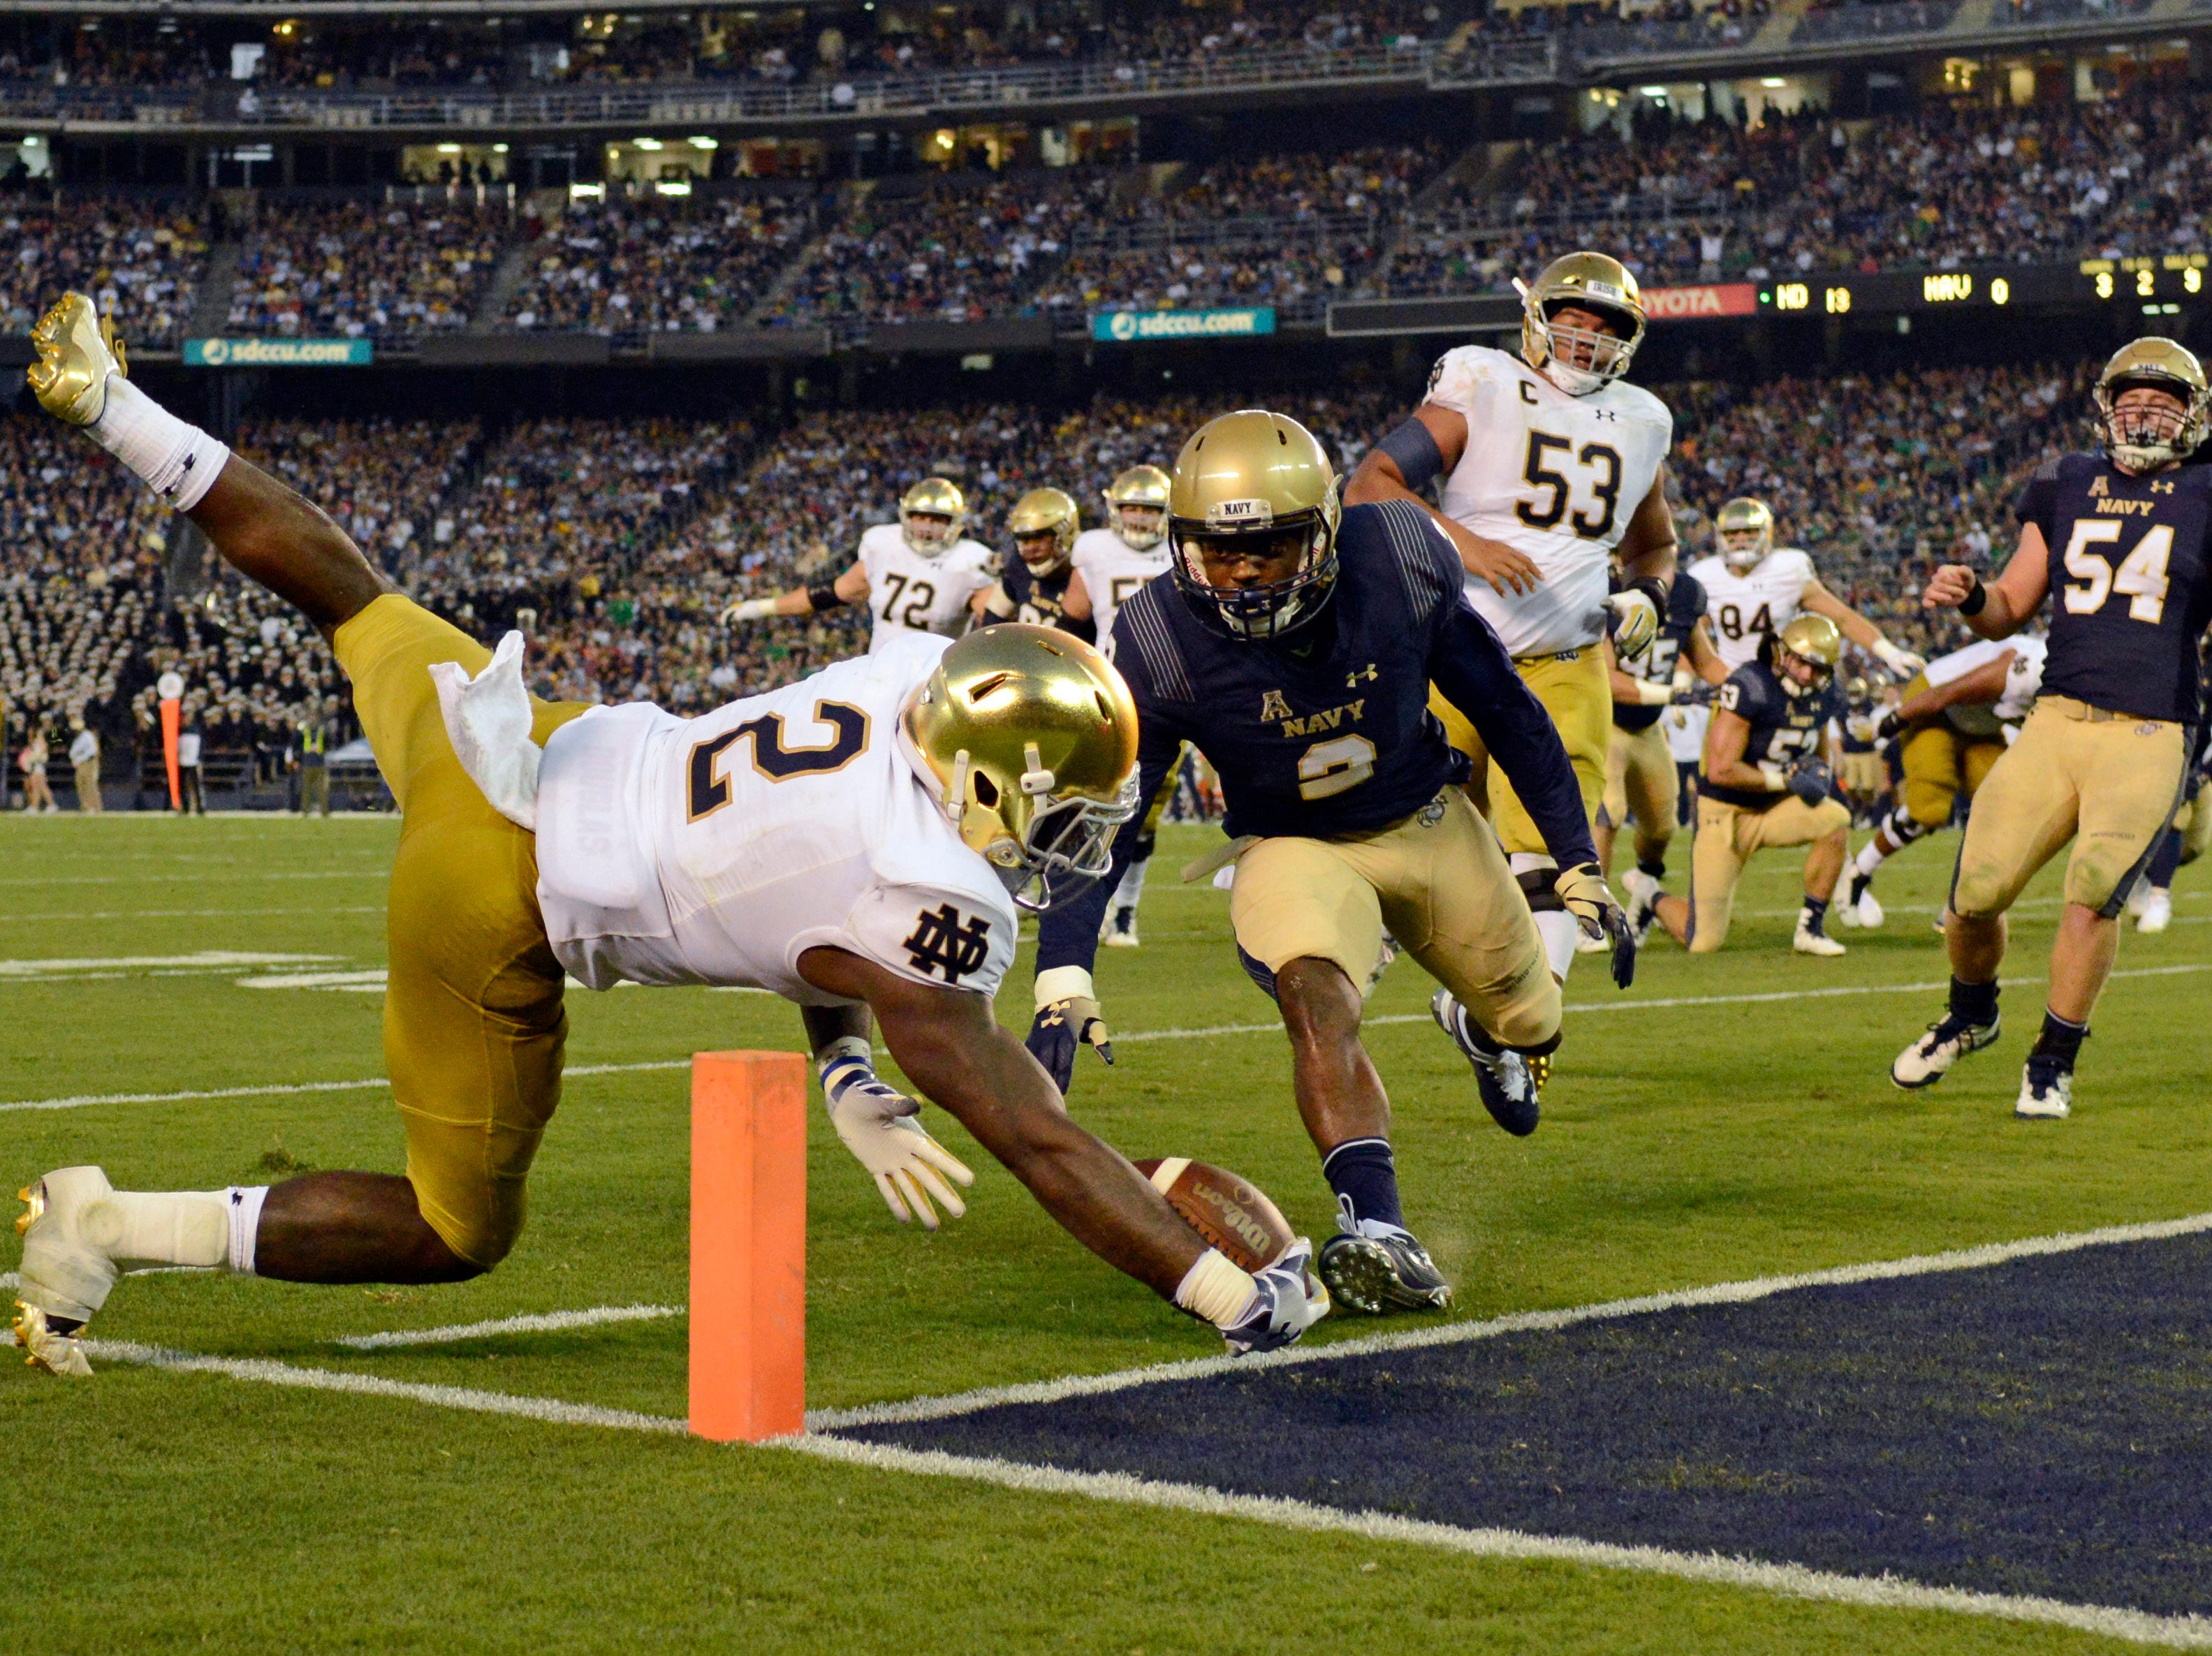 Notre Dame Fighting Irish running back Dexter Williams (left) dives for a touchdown against Navy Midshipmen cornerback Jarid Ryan (right) during the second quarter at SDCCU Stadium.